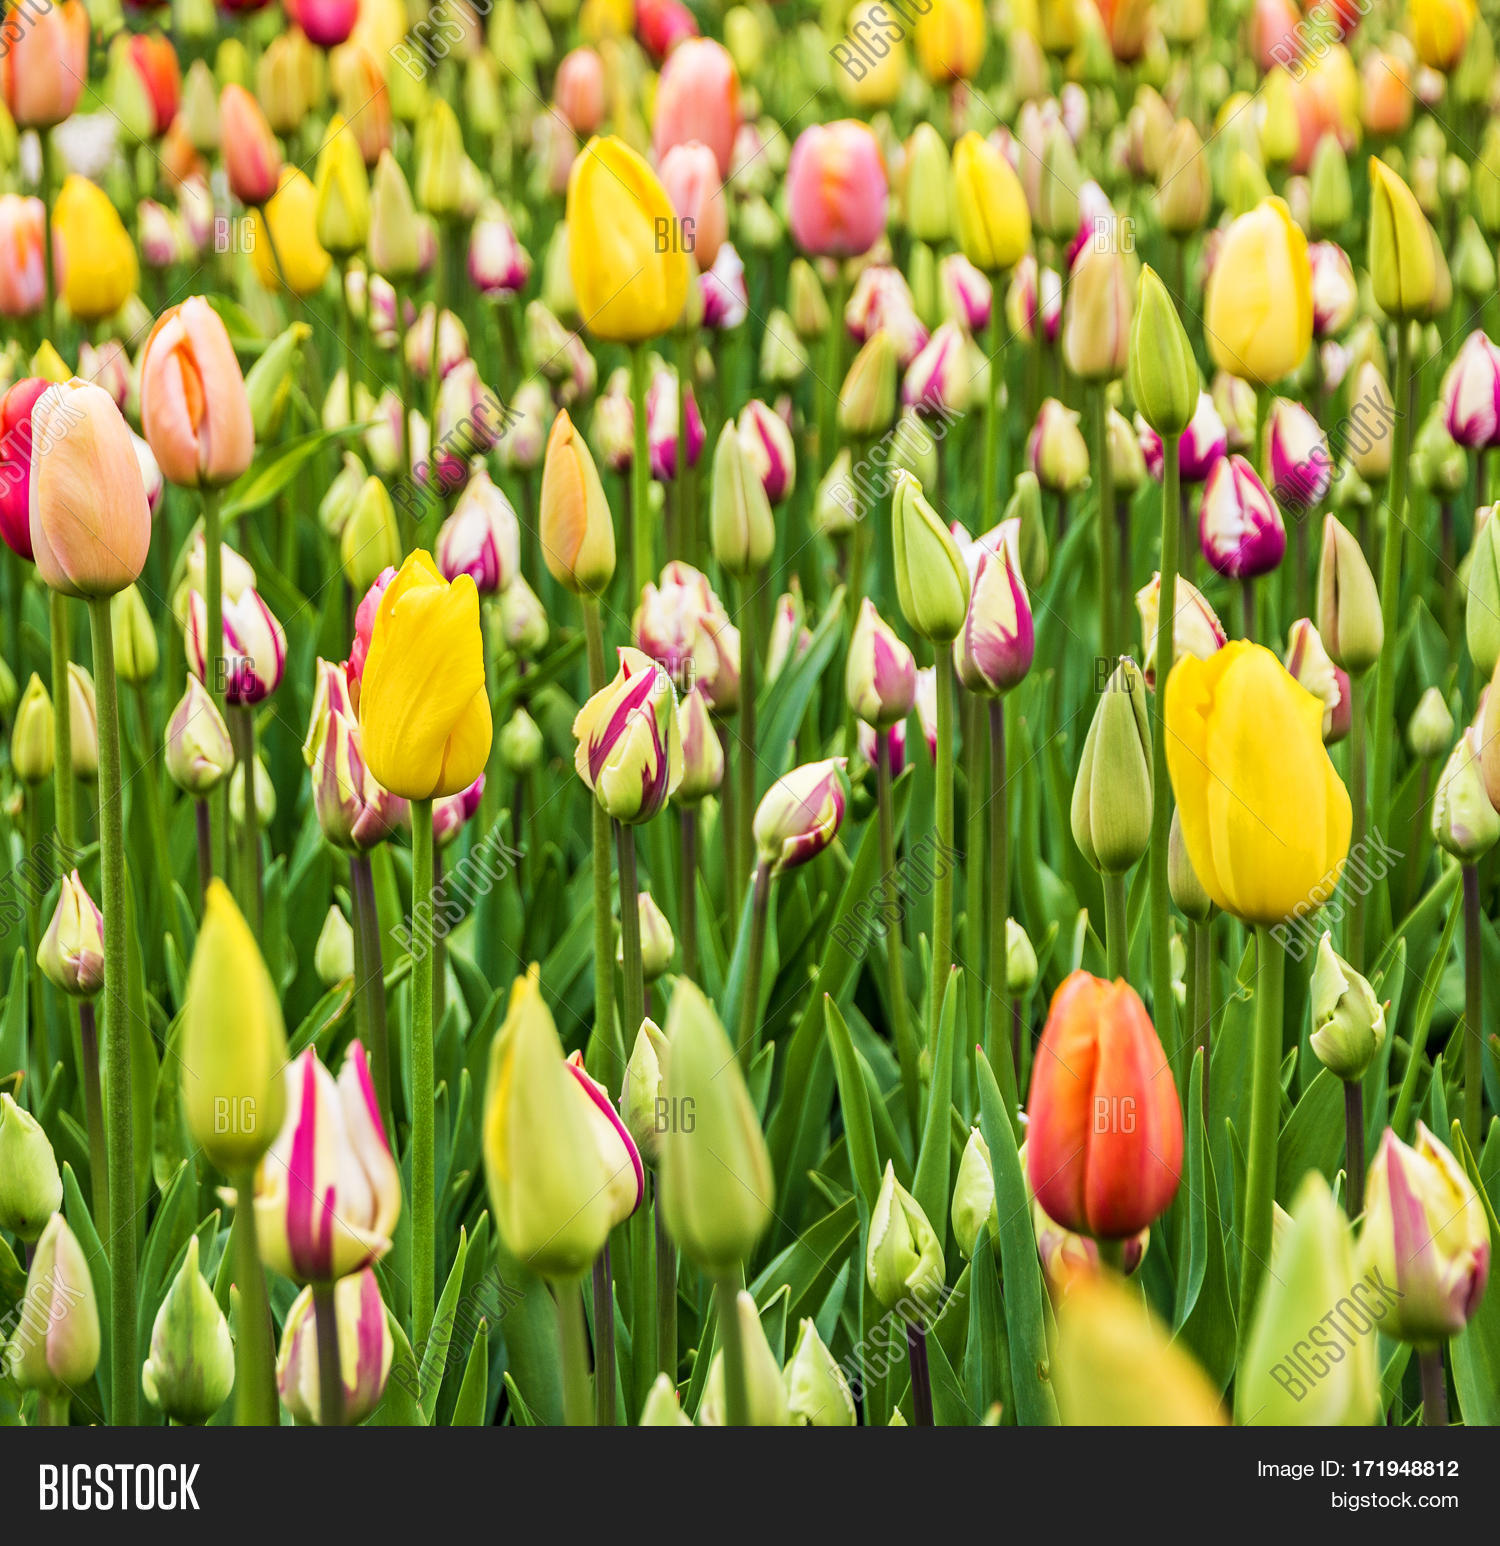 Tulip Field Flowers Spring Holland Image Photo Bigstock